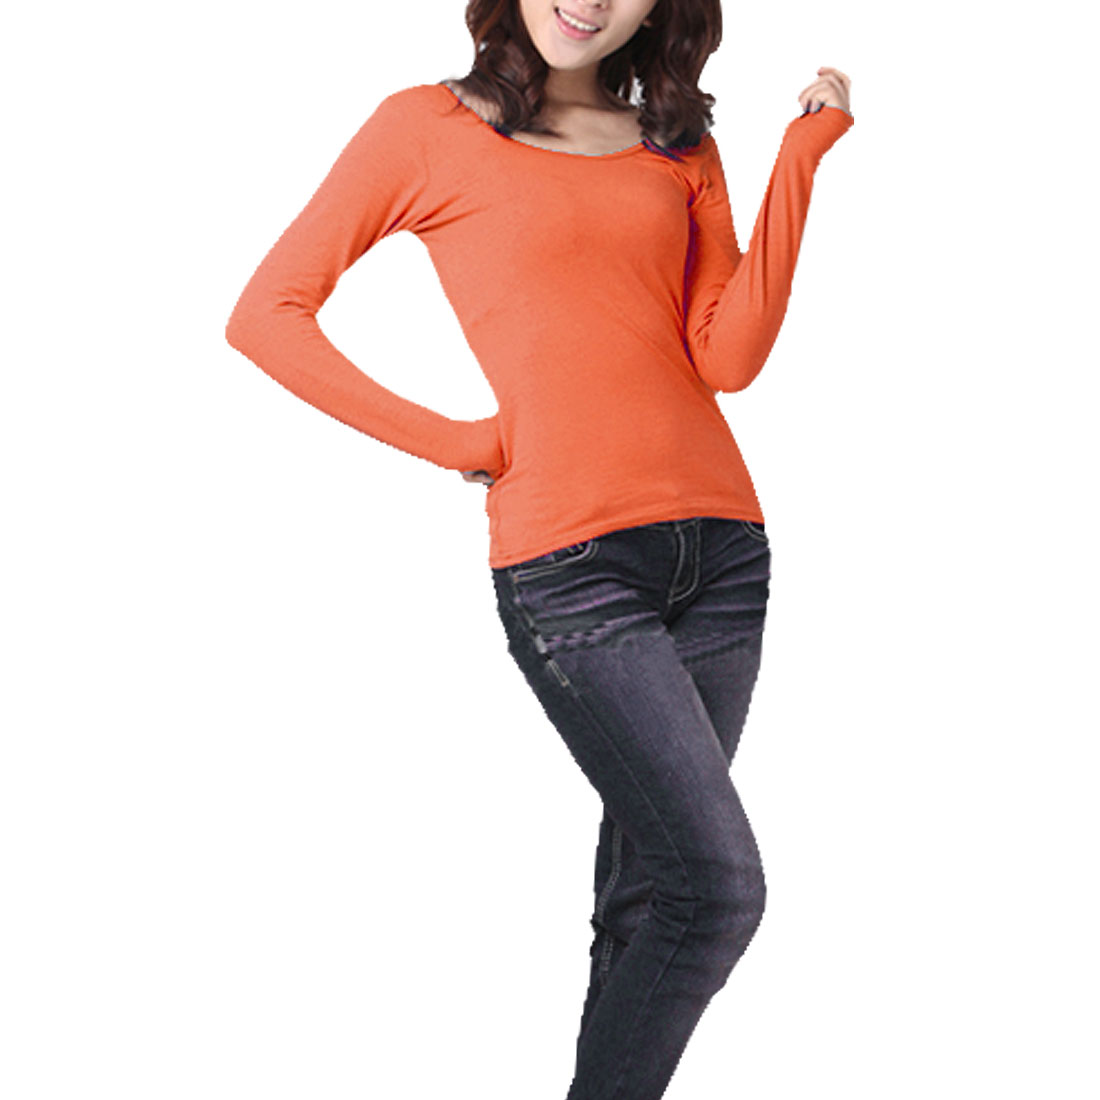 Koren Style Pullover Formfitting Basic T-Shirt Orange XS for Woman